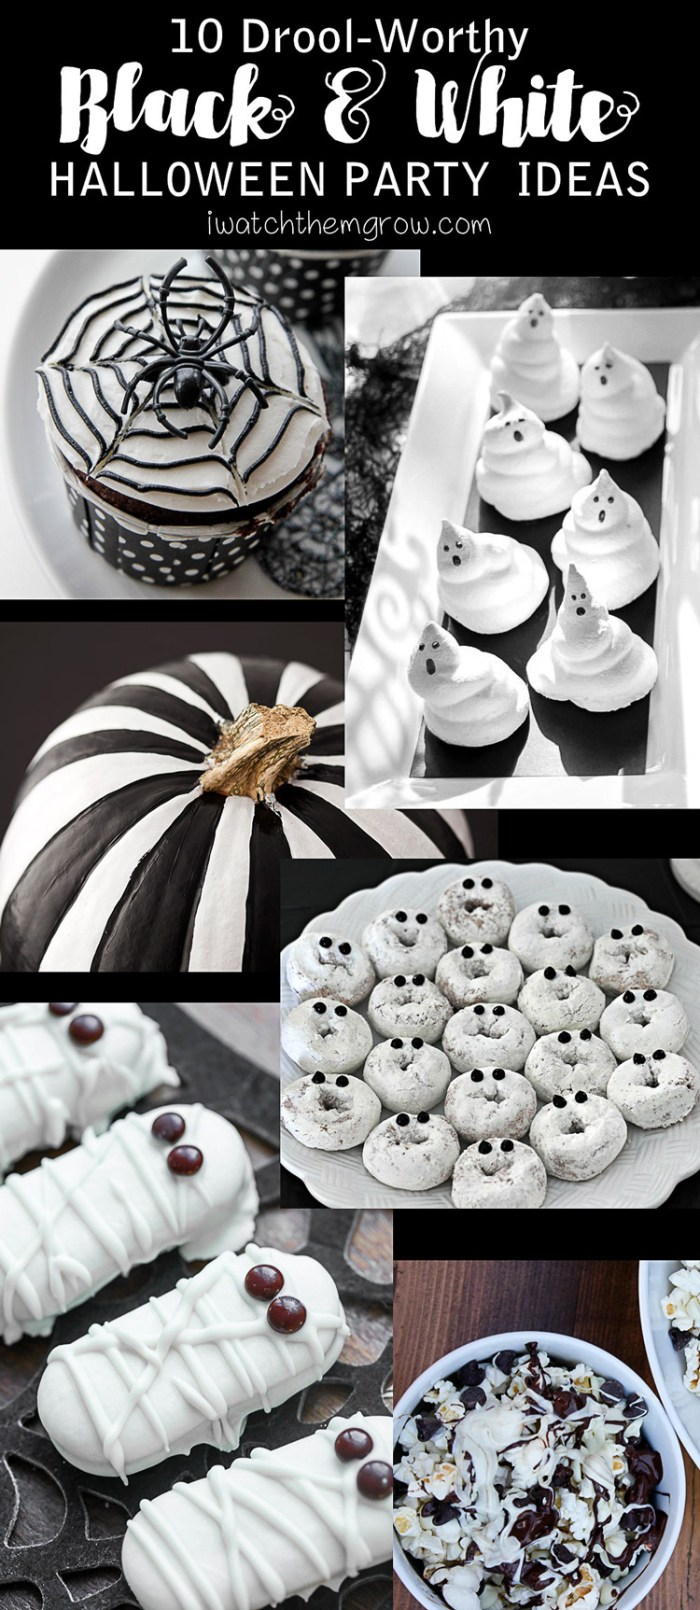 10 Drool-Worthy Black and White Halloween Party Ideas